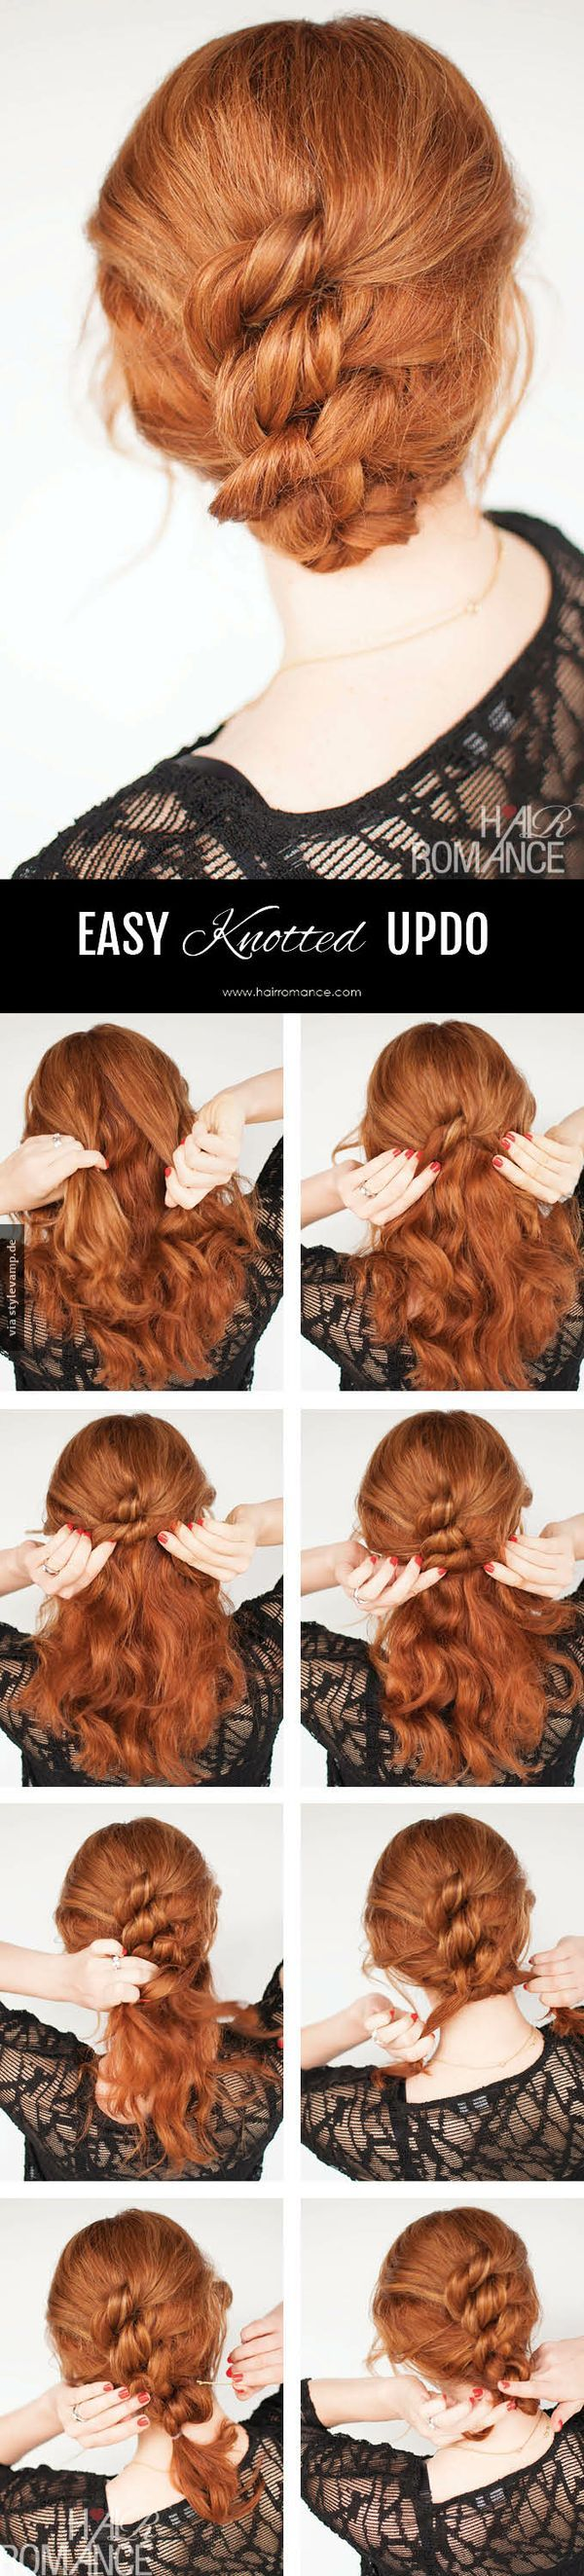 Knoted UpDo Hair Pinterest Updo Hair style and Makeup